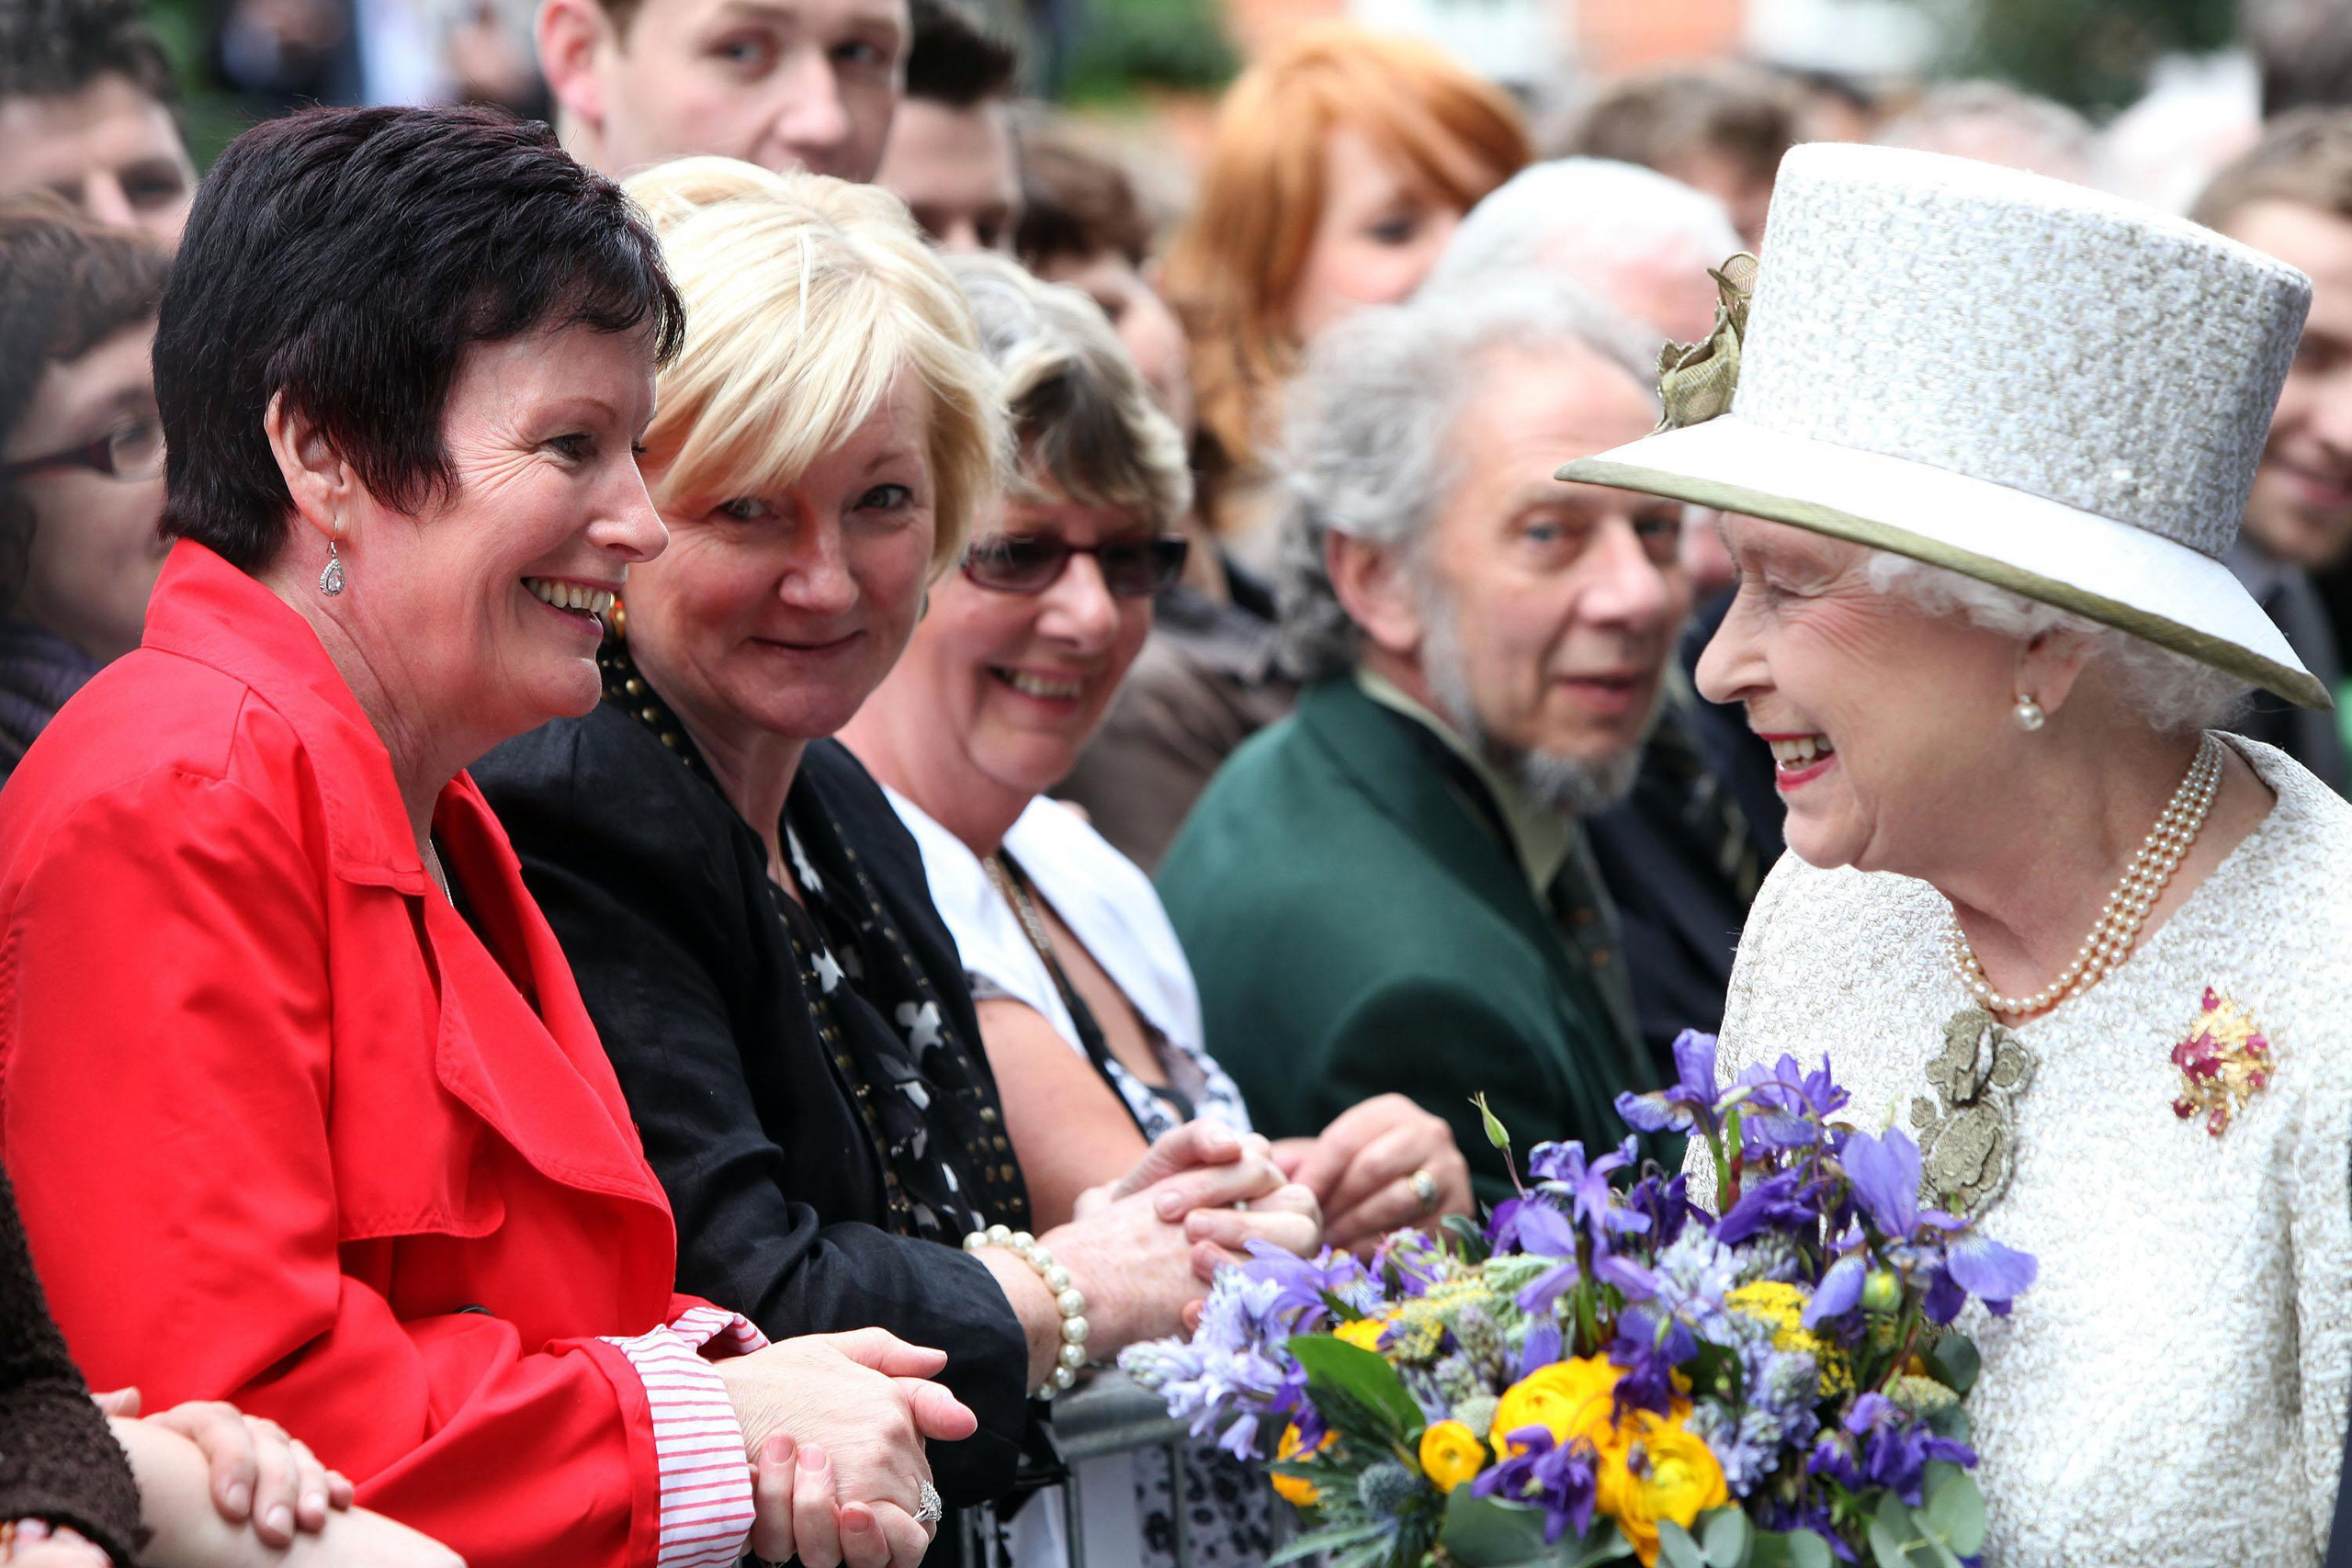 Queen Elizabeth II as she is greeted by a large group of well-wishers, as she leaves Trinity College in Dublin during the first day of her State Visit to Ireland on Dec. 27, 2011.